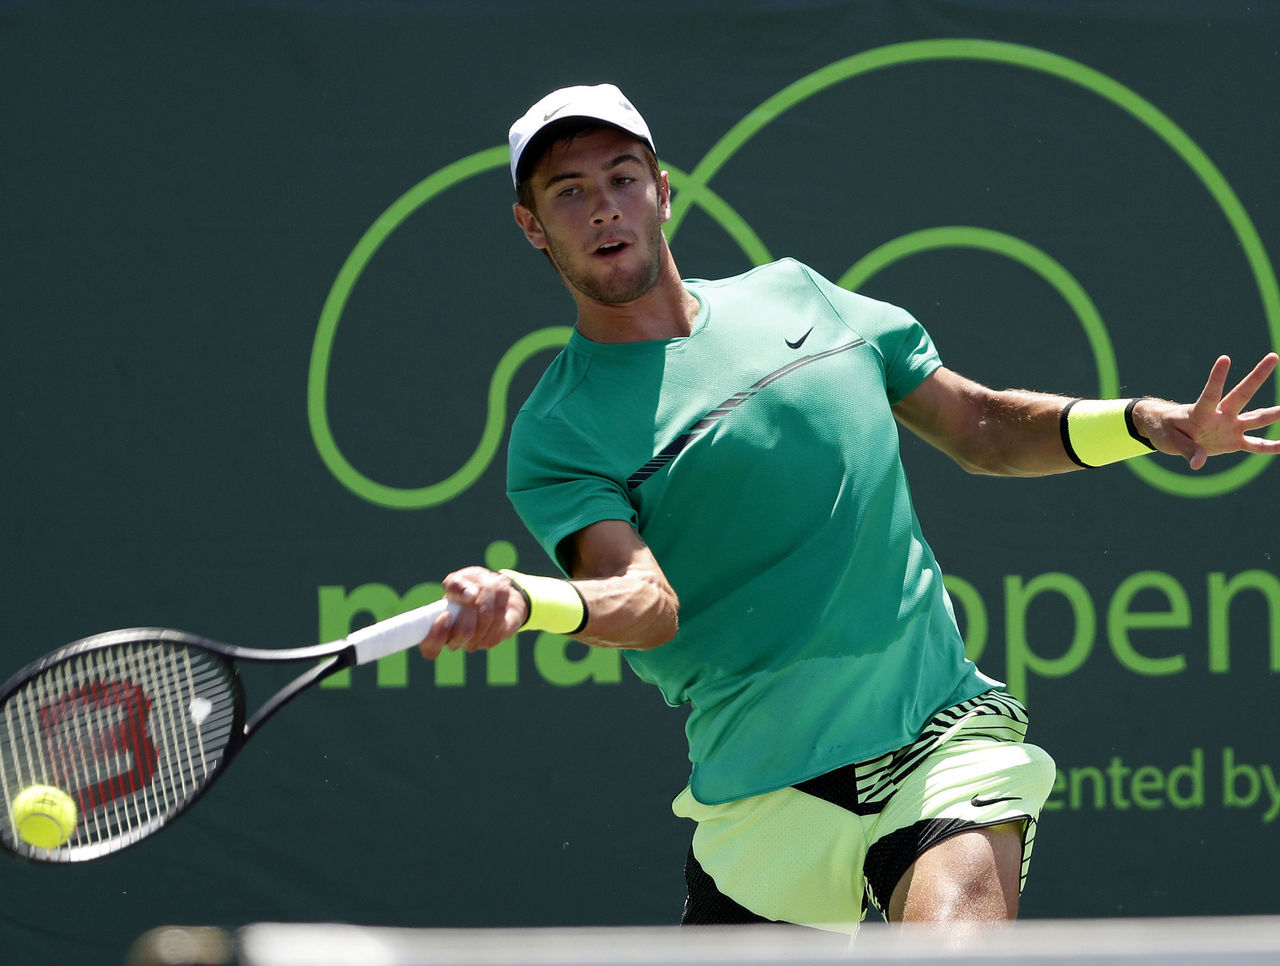 Cropped 2017 03 27t192120z 2081880721 nocid rtrmadp 3 tennis miami open